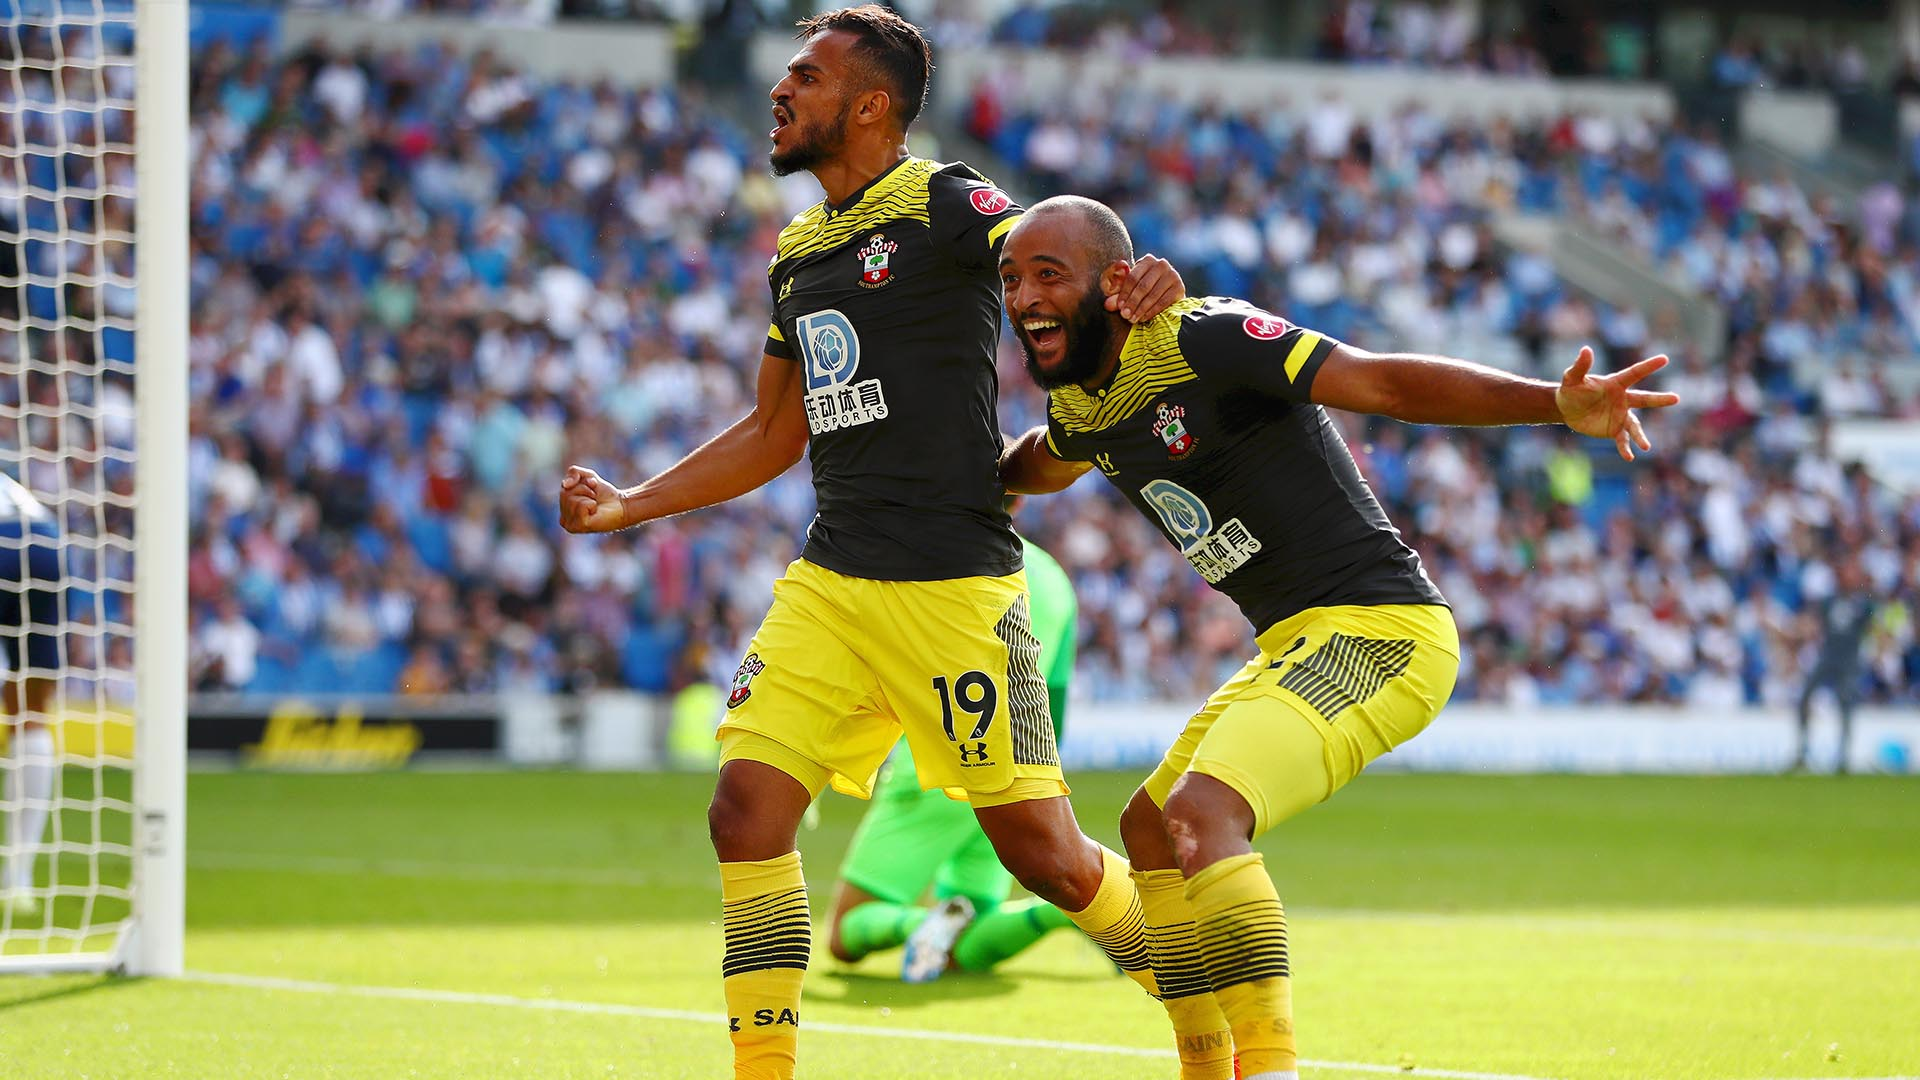 Extended highlights: Brighton and Hove Albion 0, Southampton 2